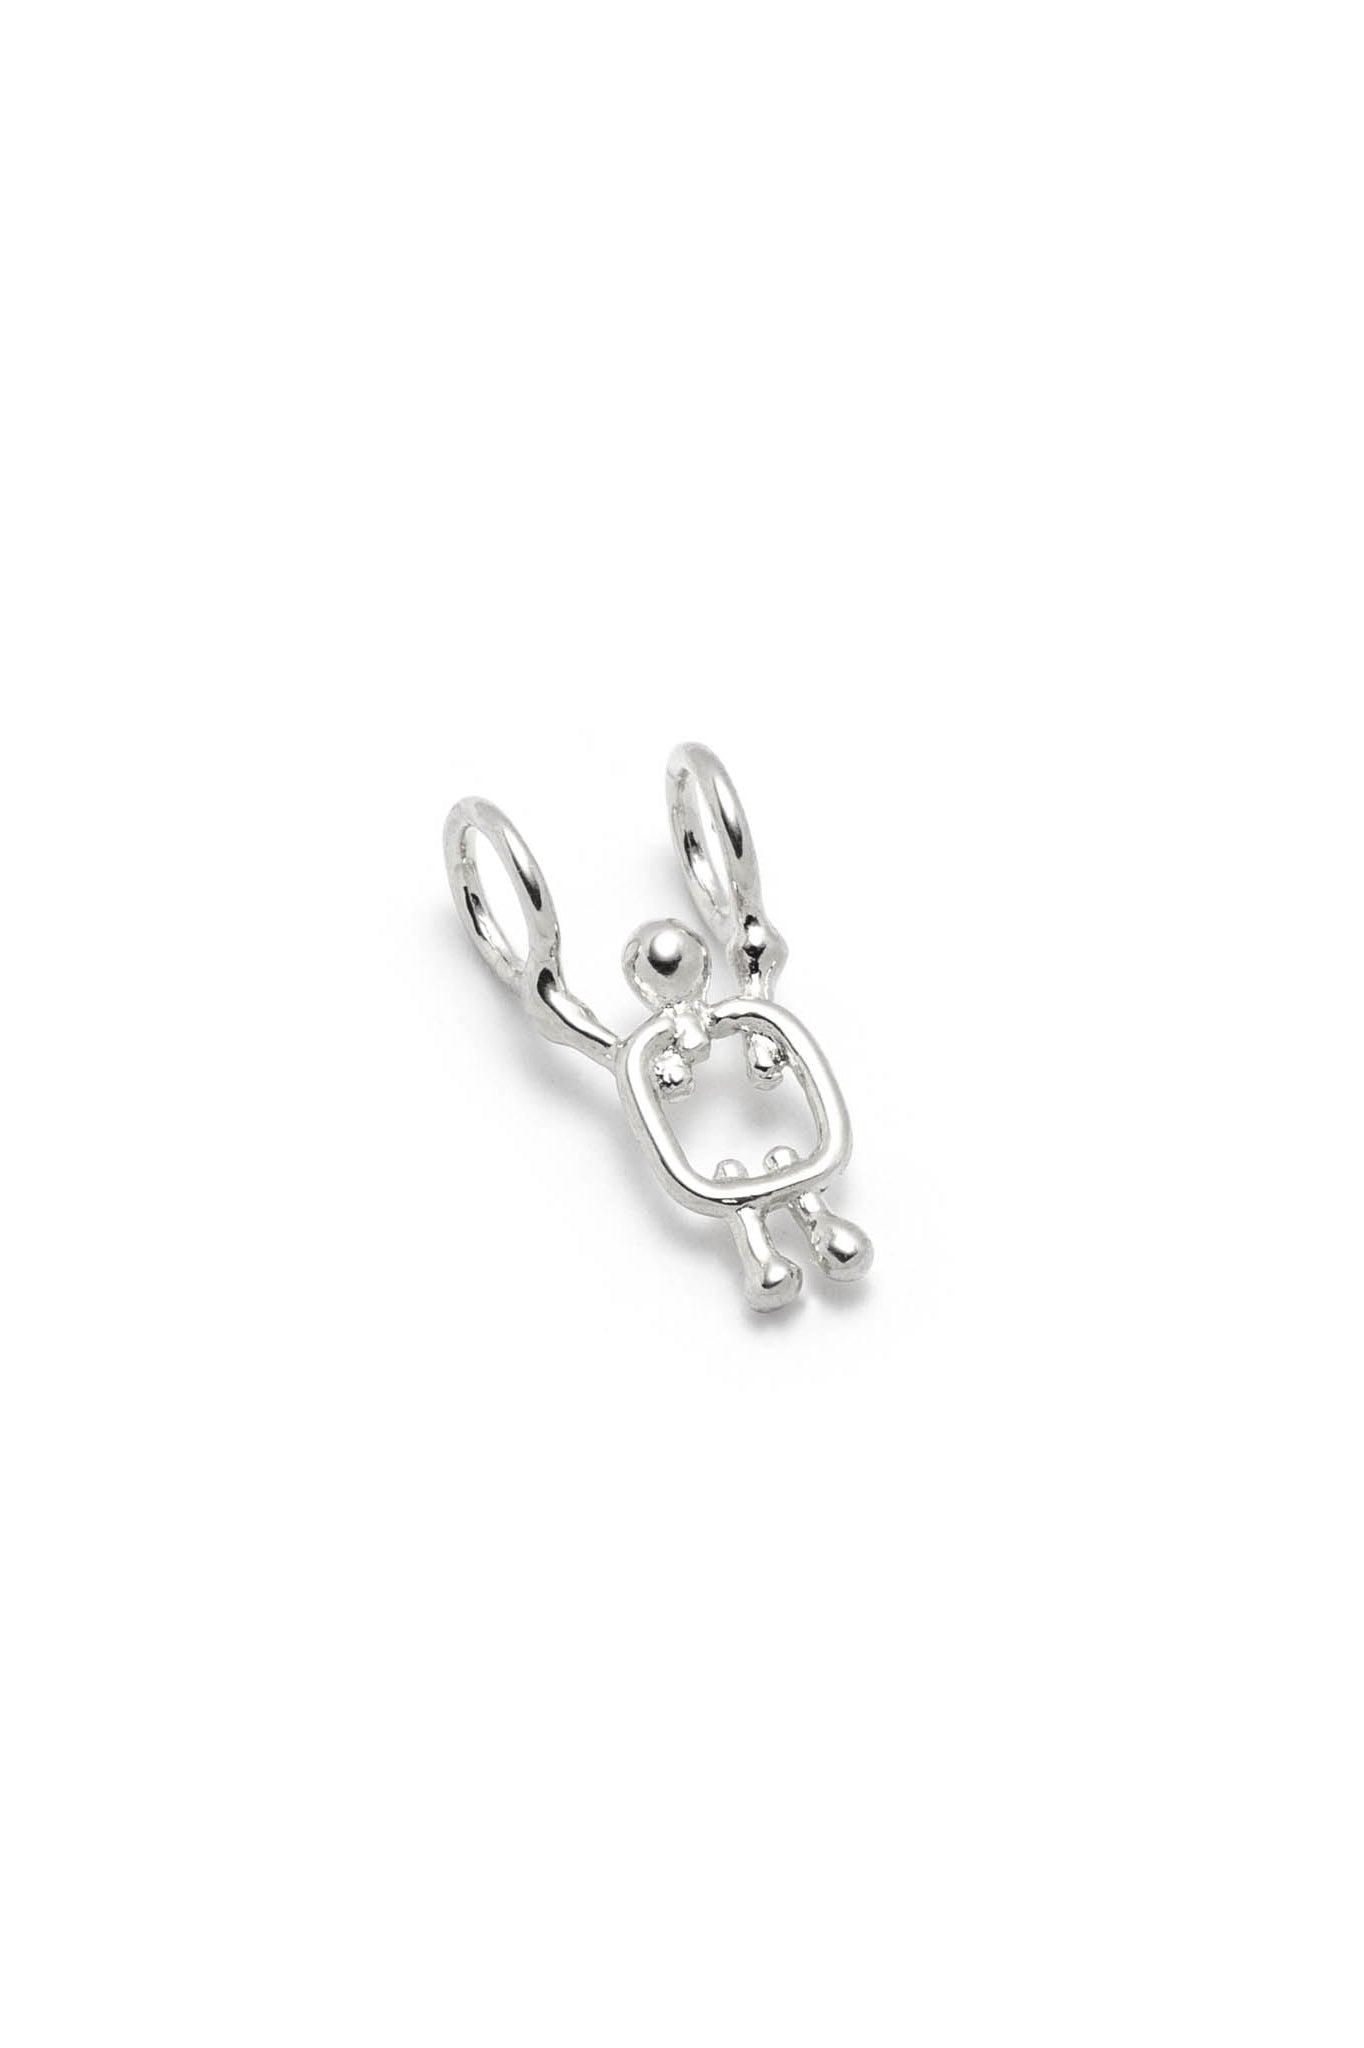 Boy charm by Lidia in sterling silver